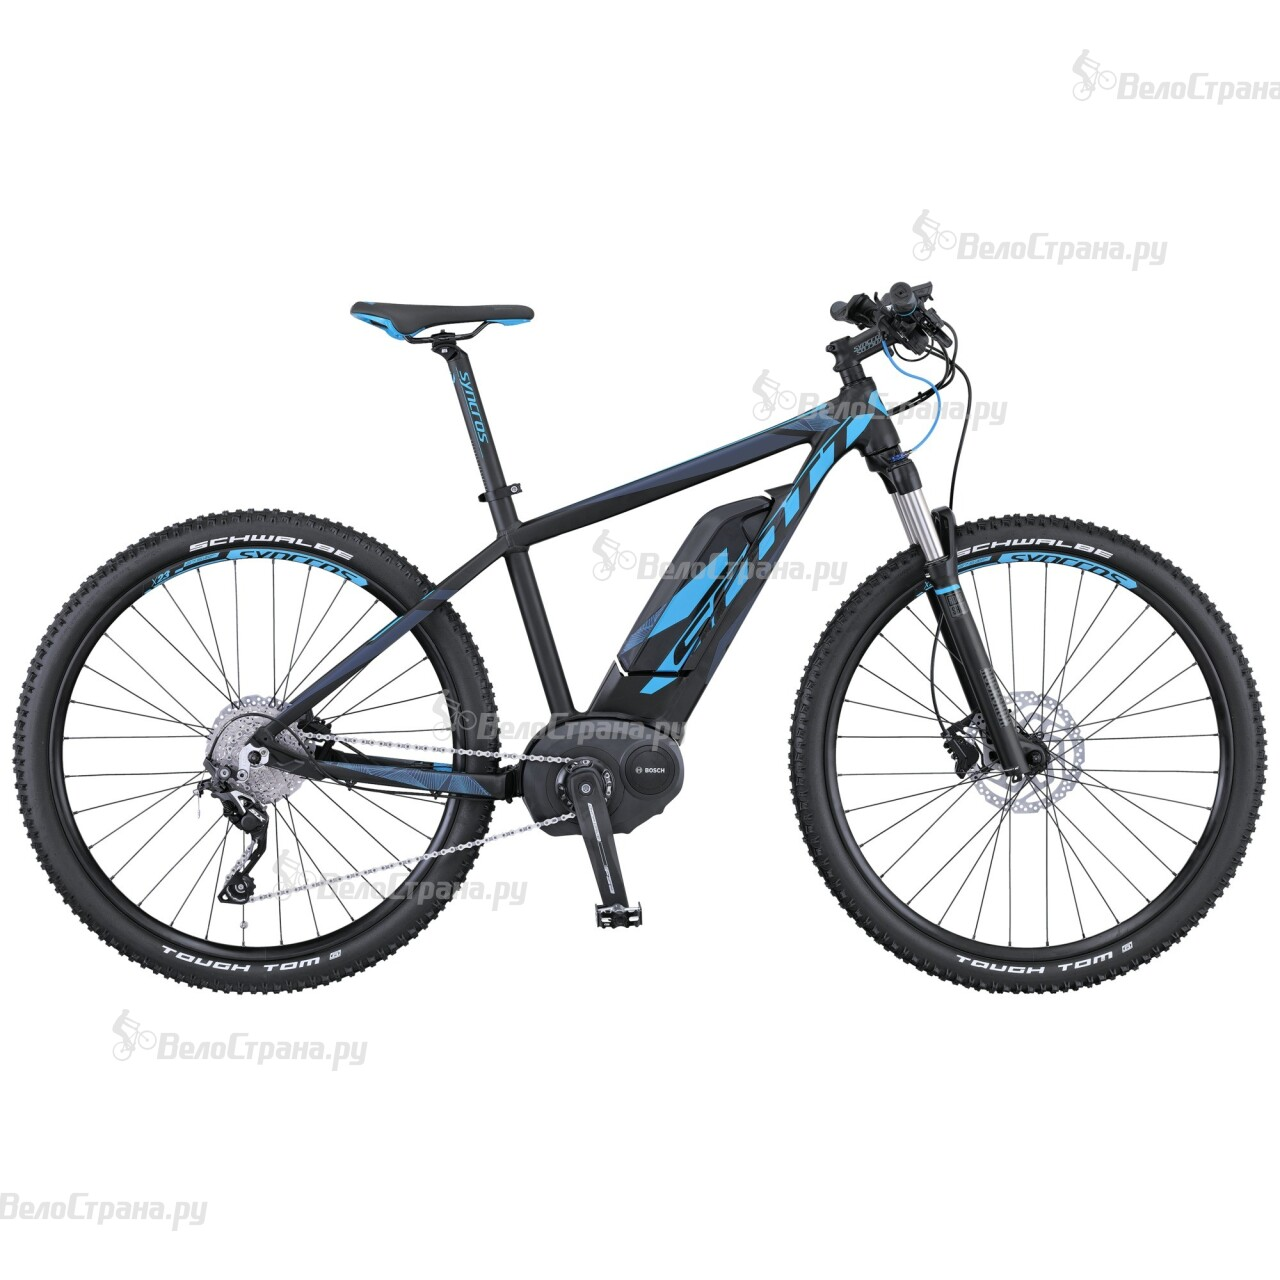 Велосипед Scott E-Contessa 720 (2016) велосипед scott contessa solace 15 compact 2015